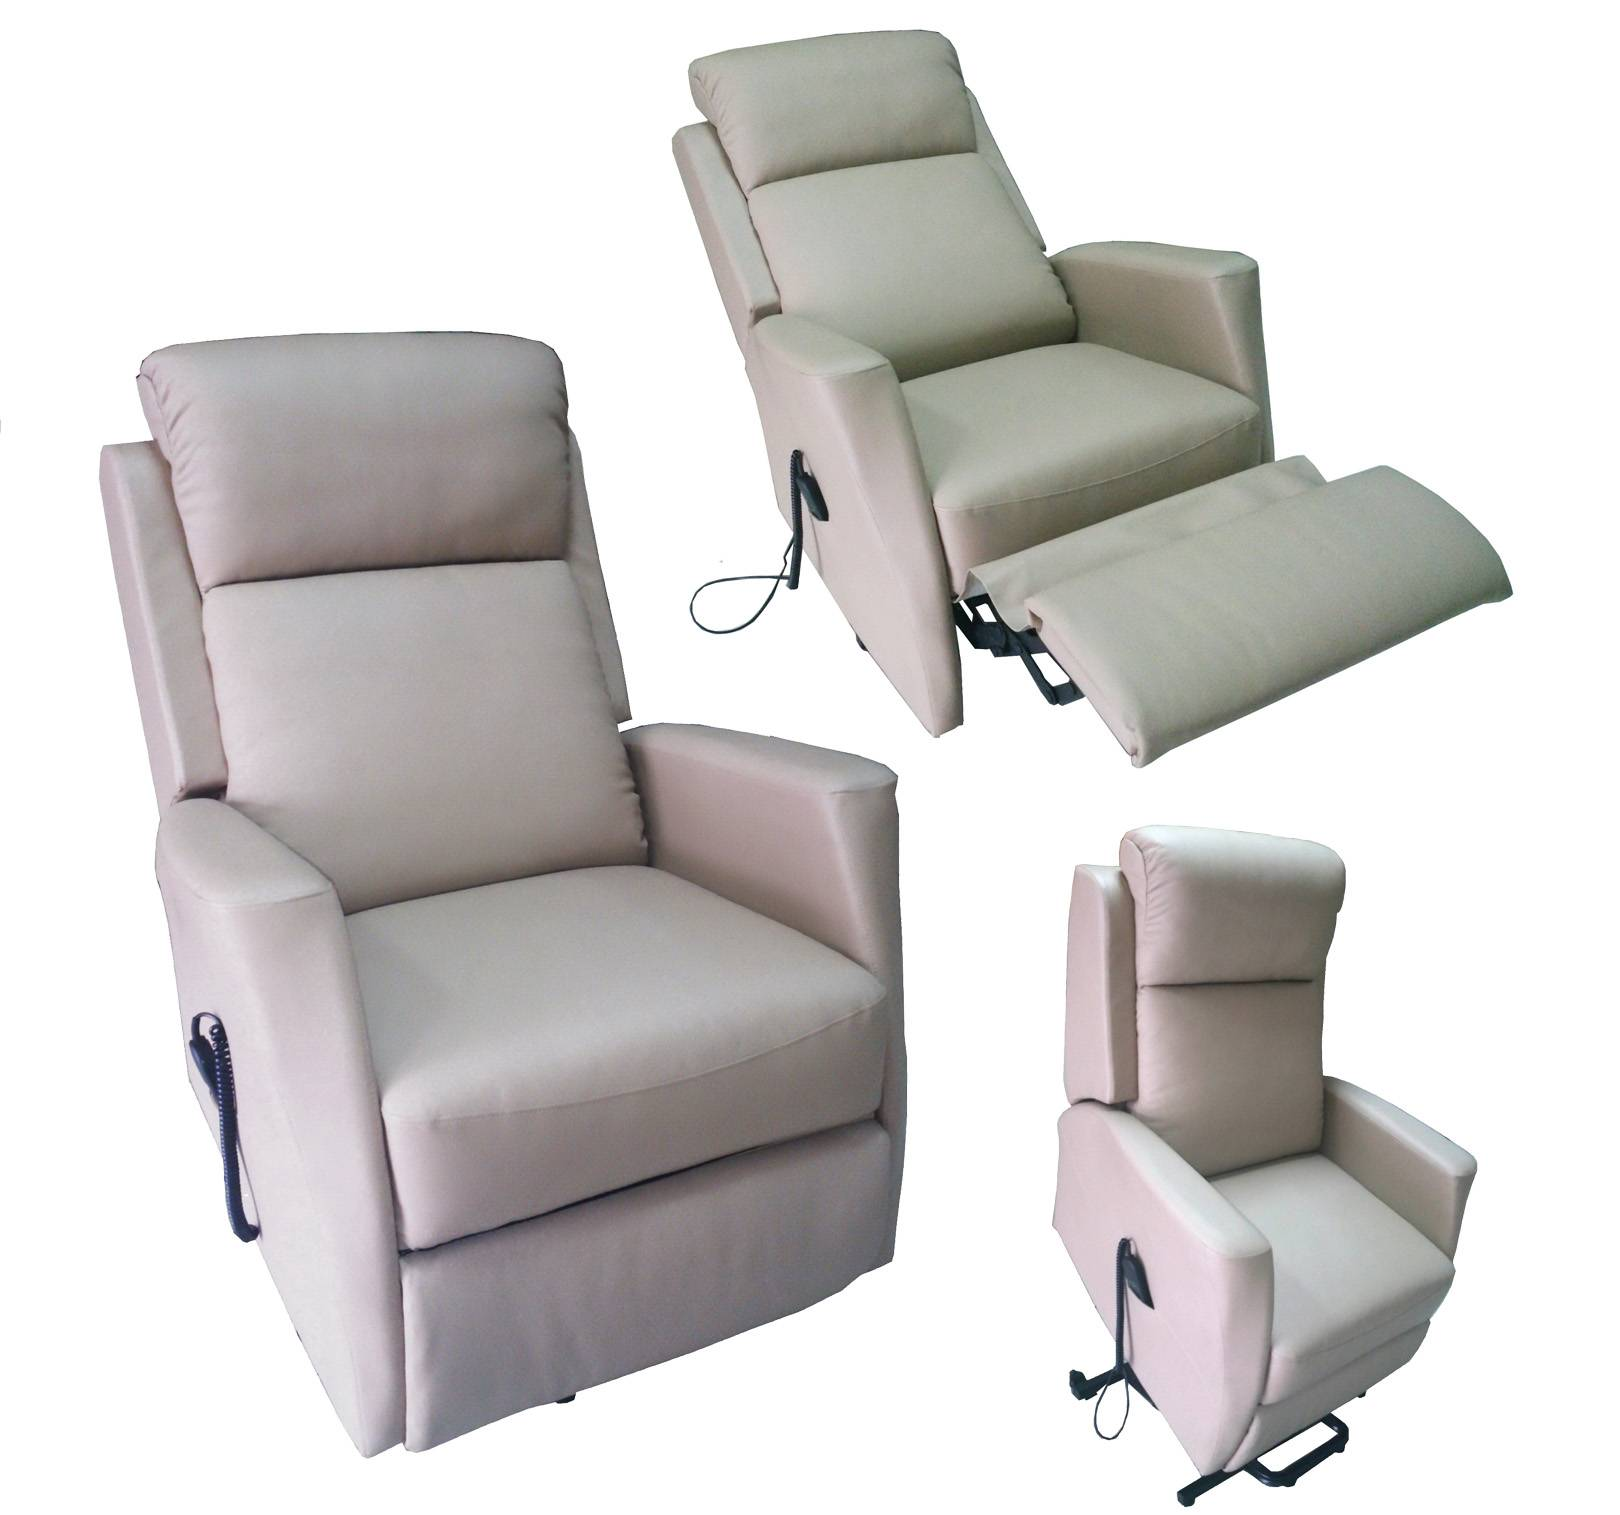 BH-8200 Lift Recliner Chair, Nursing Chair, Help Standing Chair, Home Care Furniture